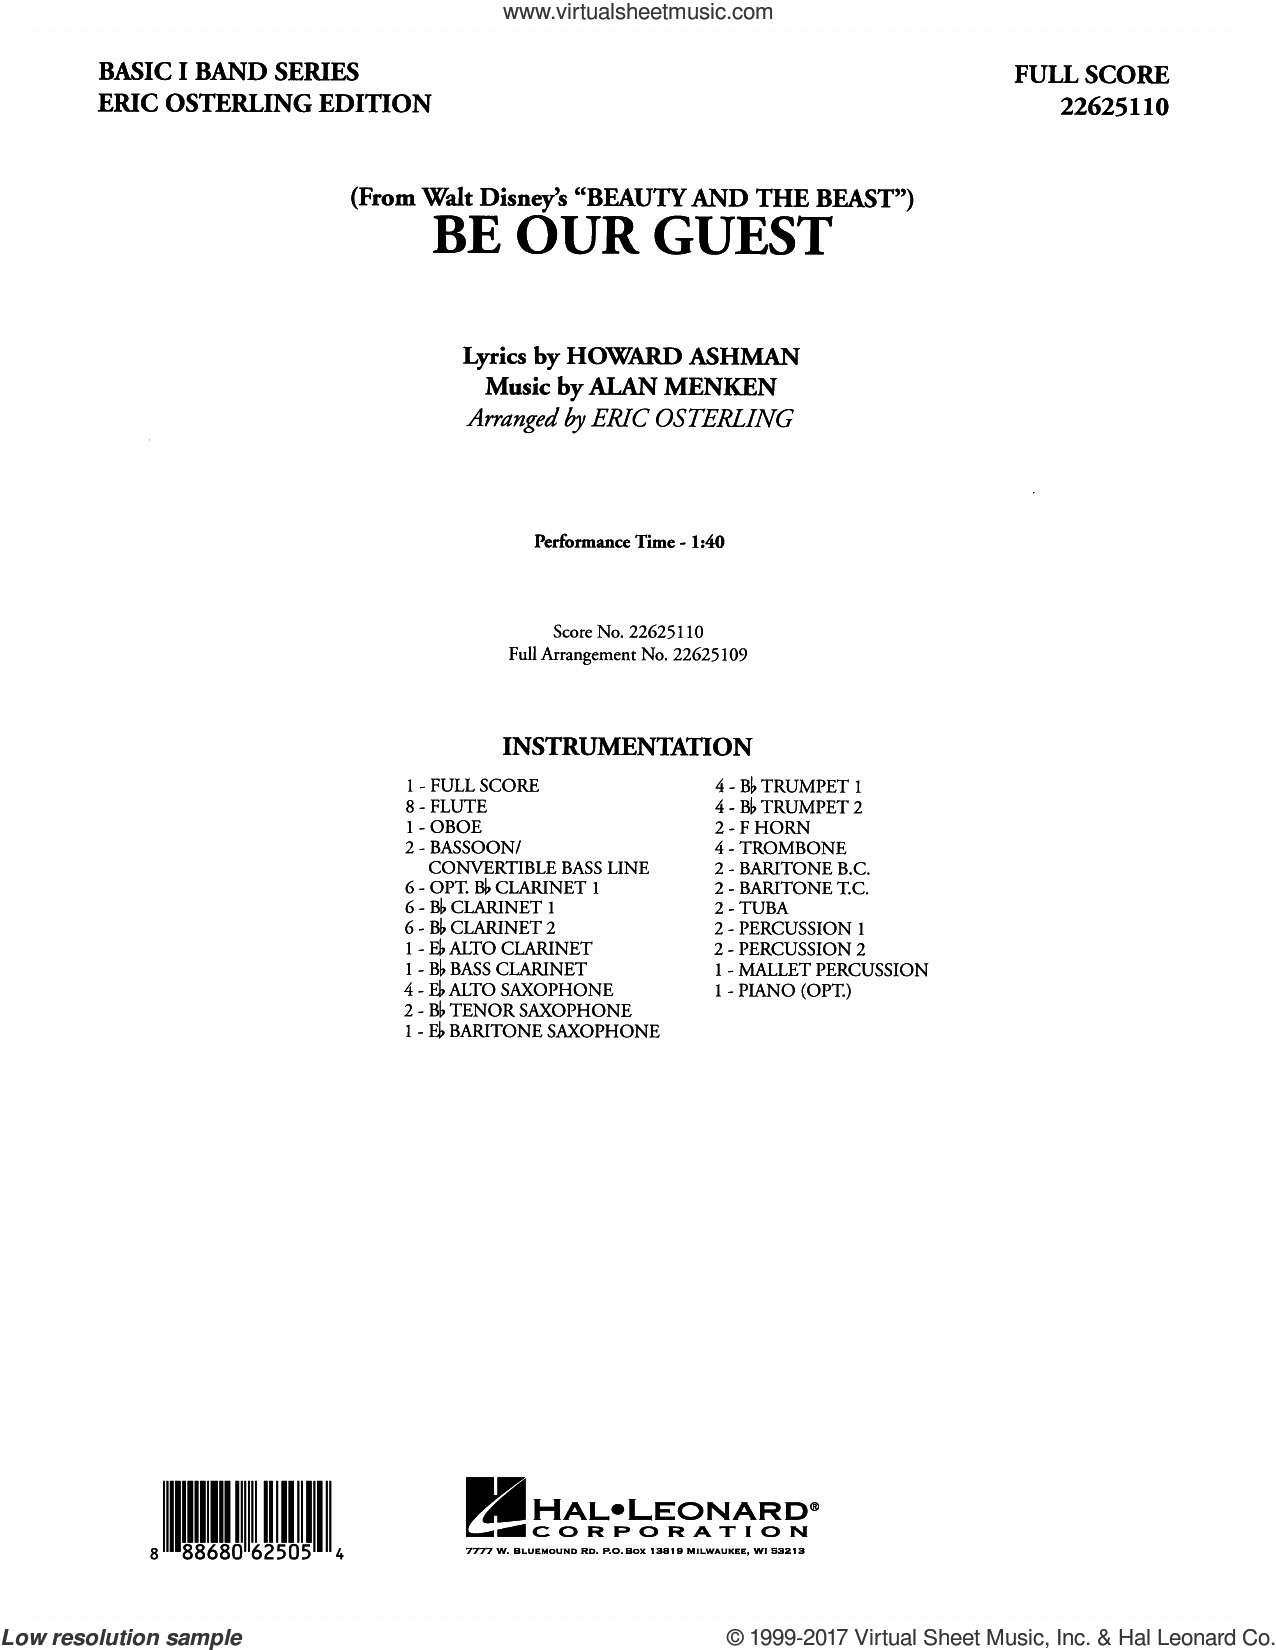 Be Our Guest (COMPLETE) sheet music for concert band by Alan Menken, Eric Osterling and Howard Ashman, intermediate skill level